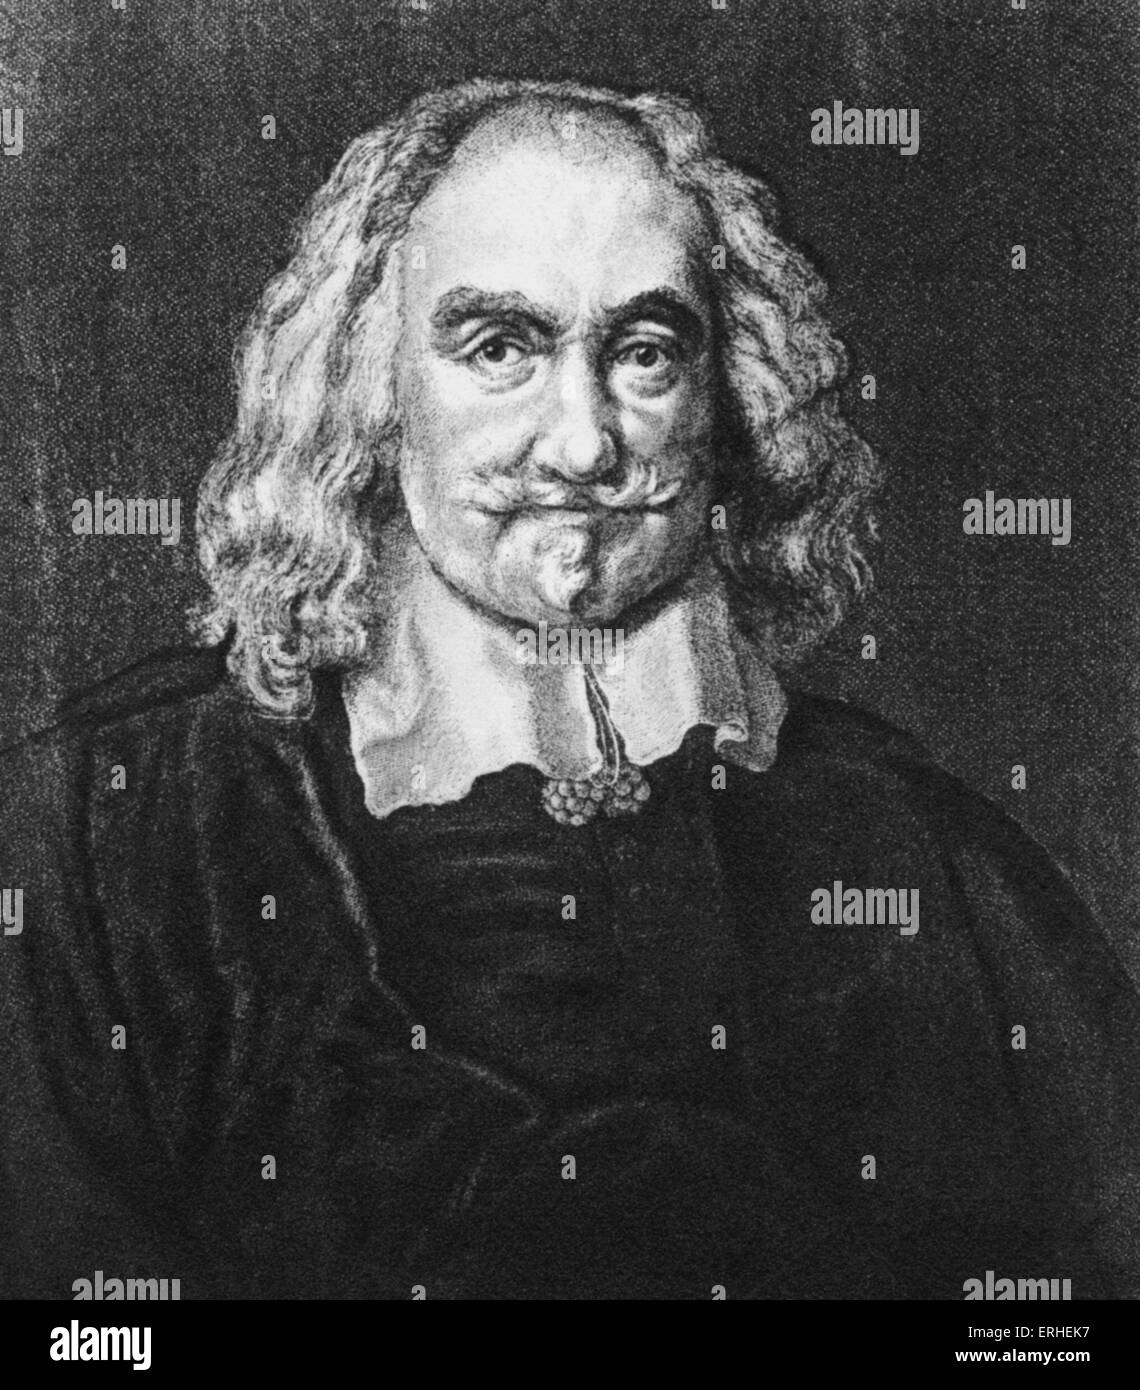 Thomas Hobbes - English moral and political philospher 1588 -1679 - Stock Image